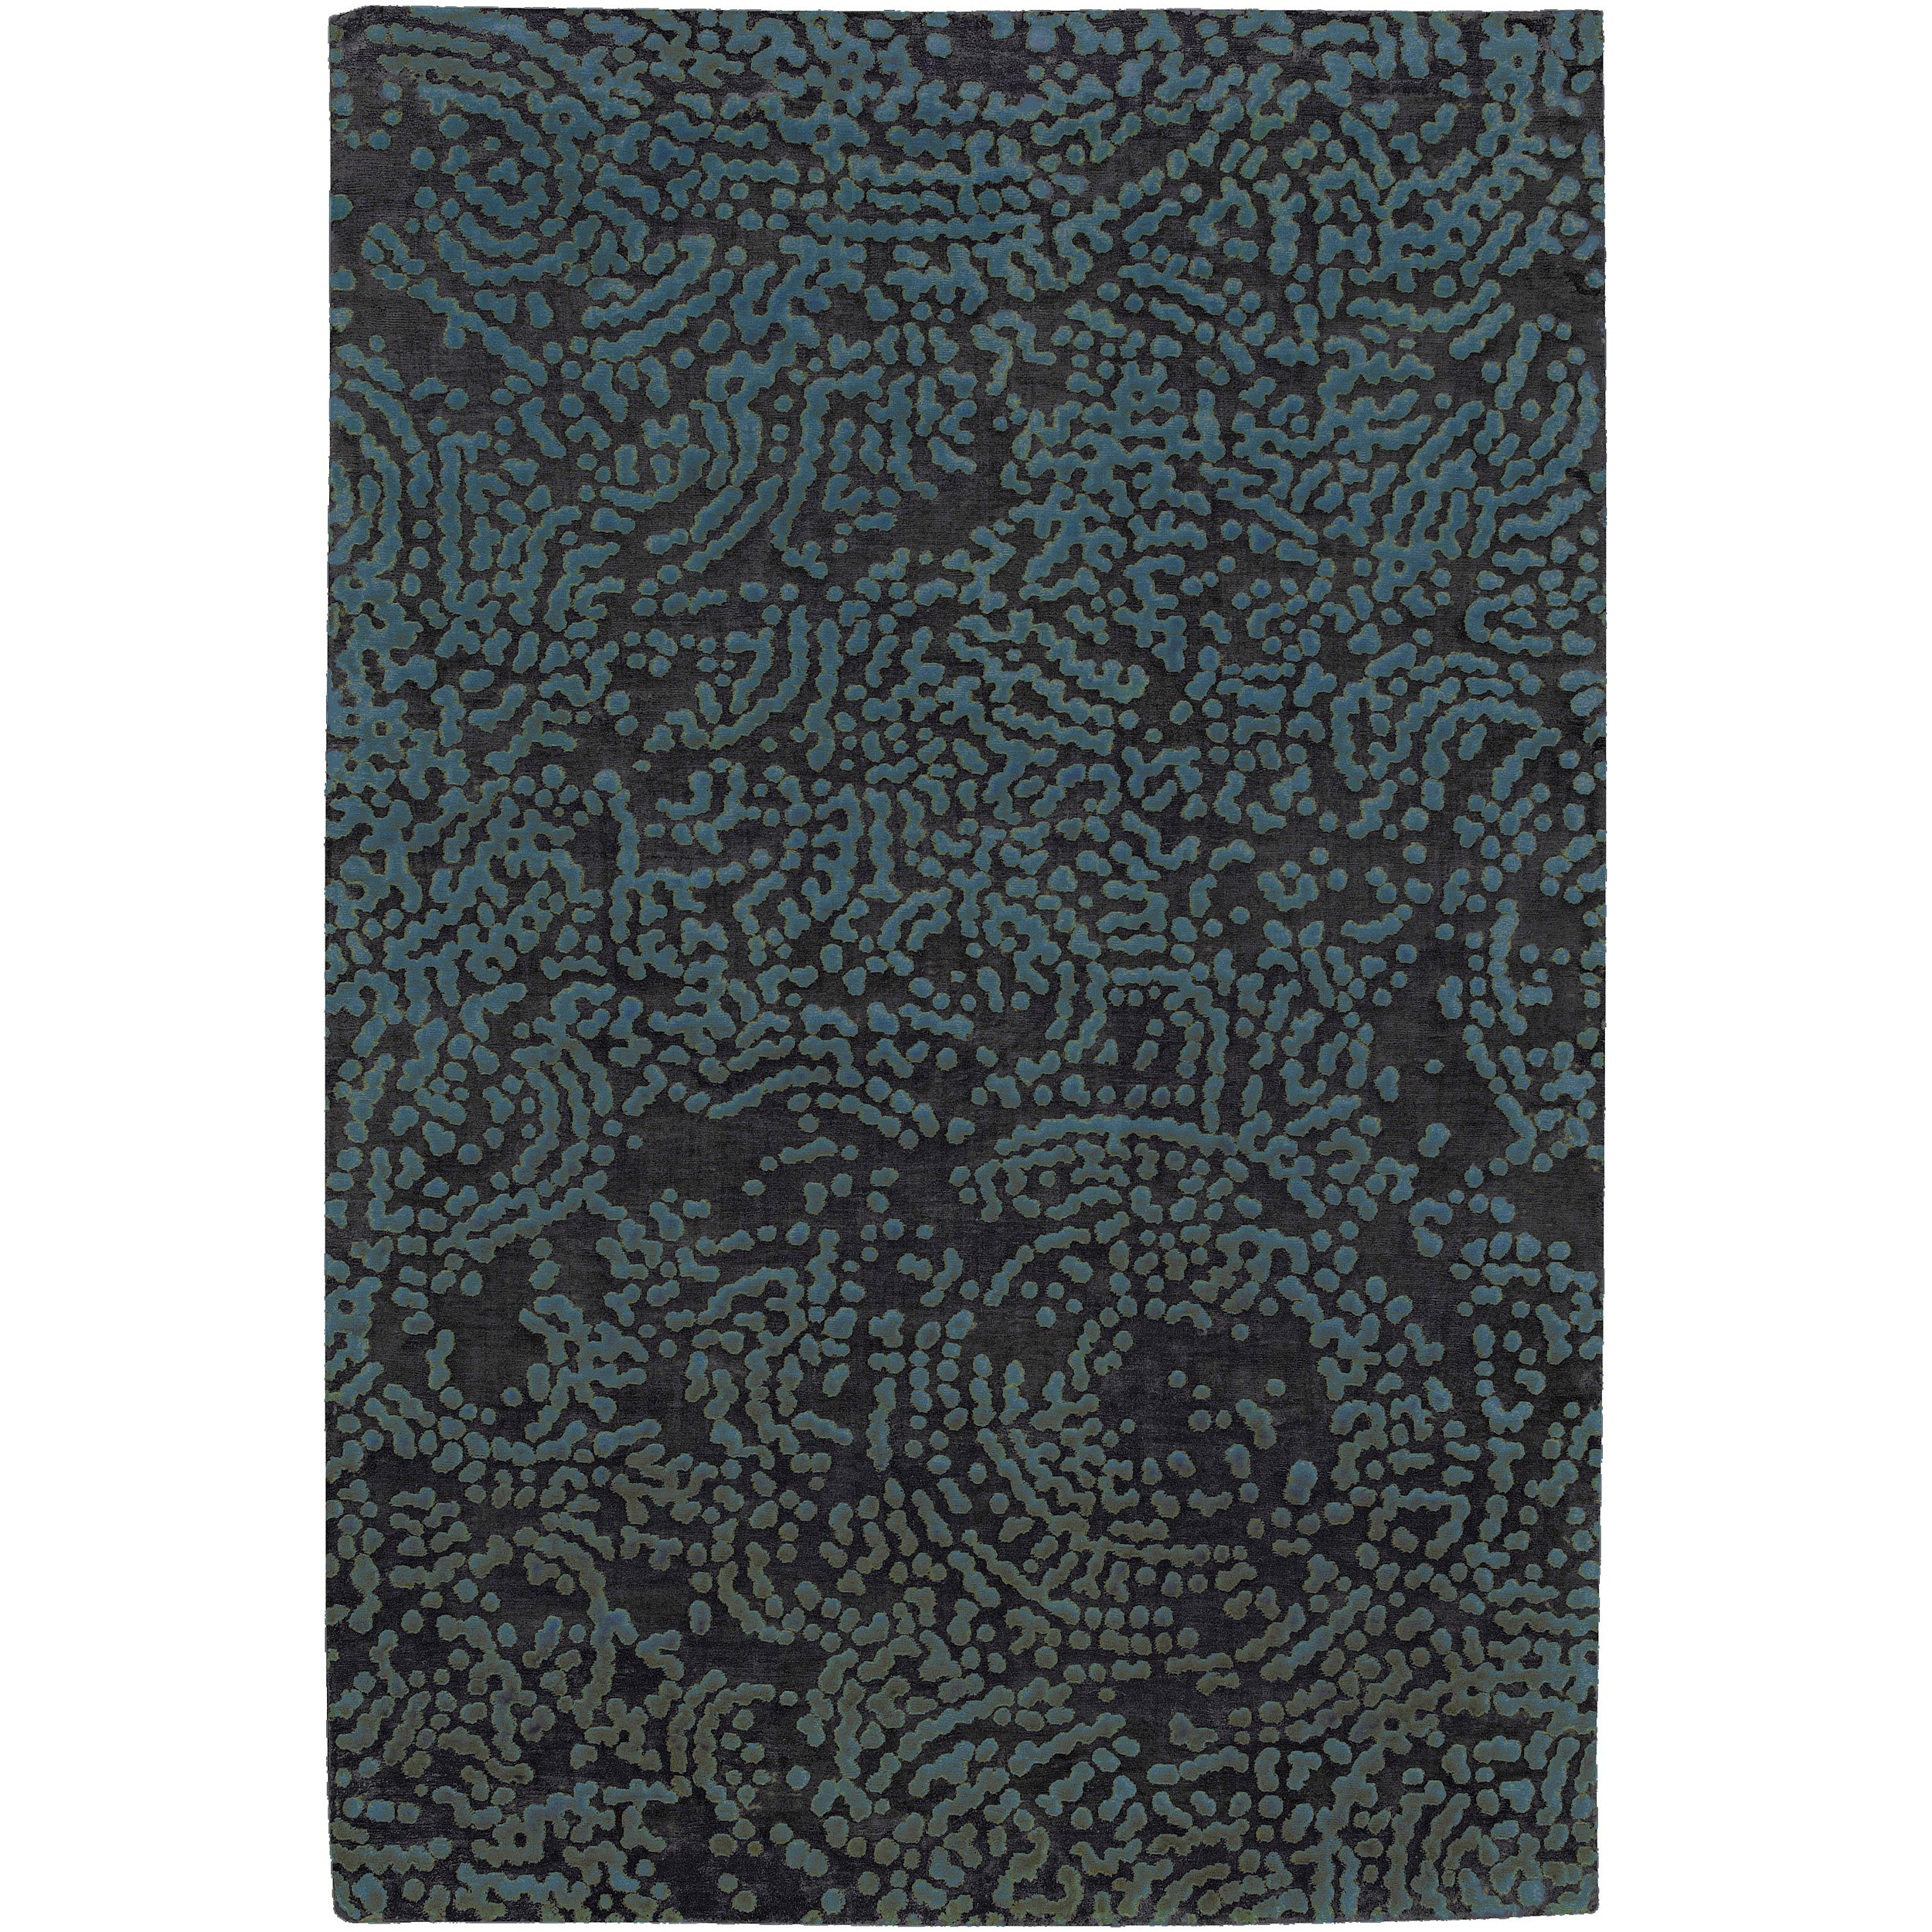 Hand-knotted Elkton Abstract Design Wool Rug (9' x 13')